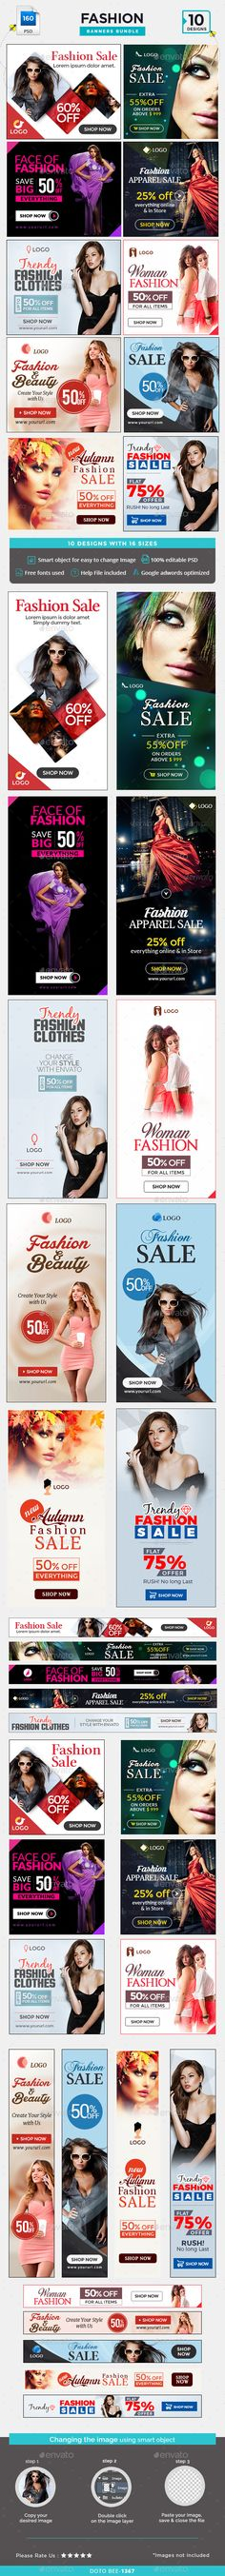 Fashion Sale Banners Bundle - 10 Sets - 160 Banners Templates PSD #ads #promote Download here: http://graphicriver.net/item/fashion-sale-banners-bundle-10-sets-160-banners/16145532?ref=ksioks